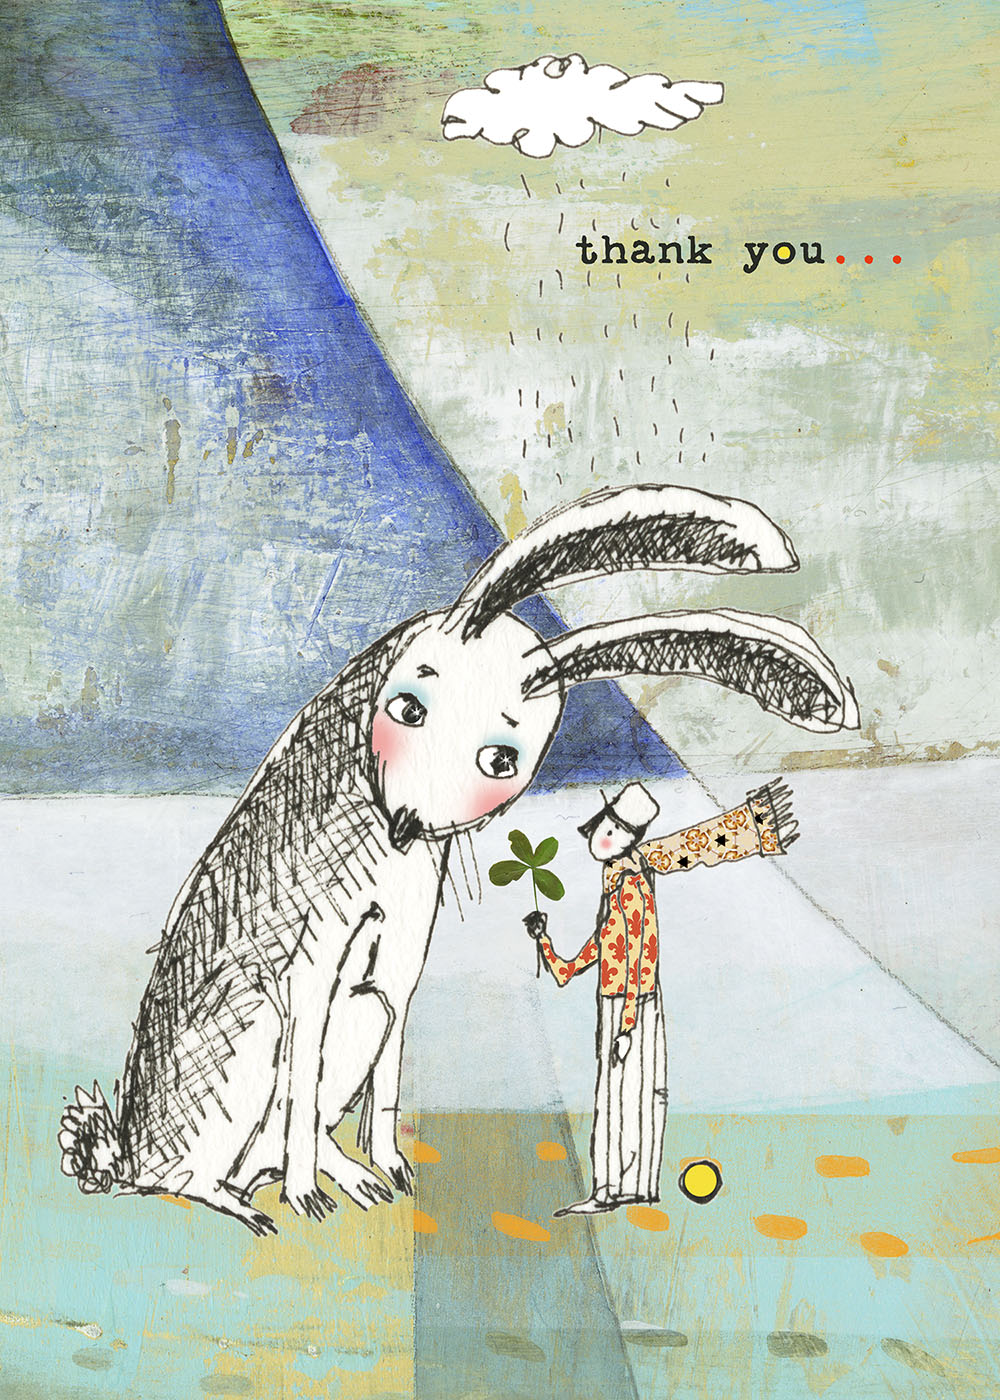 443 Rabbit's Thank you